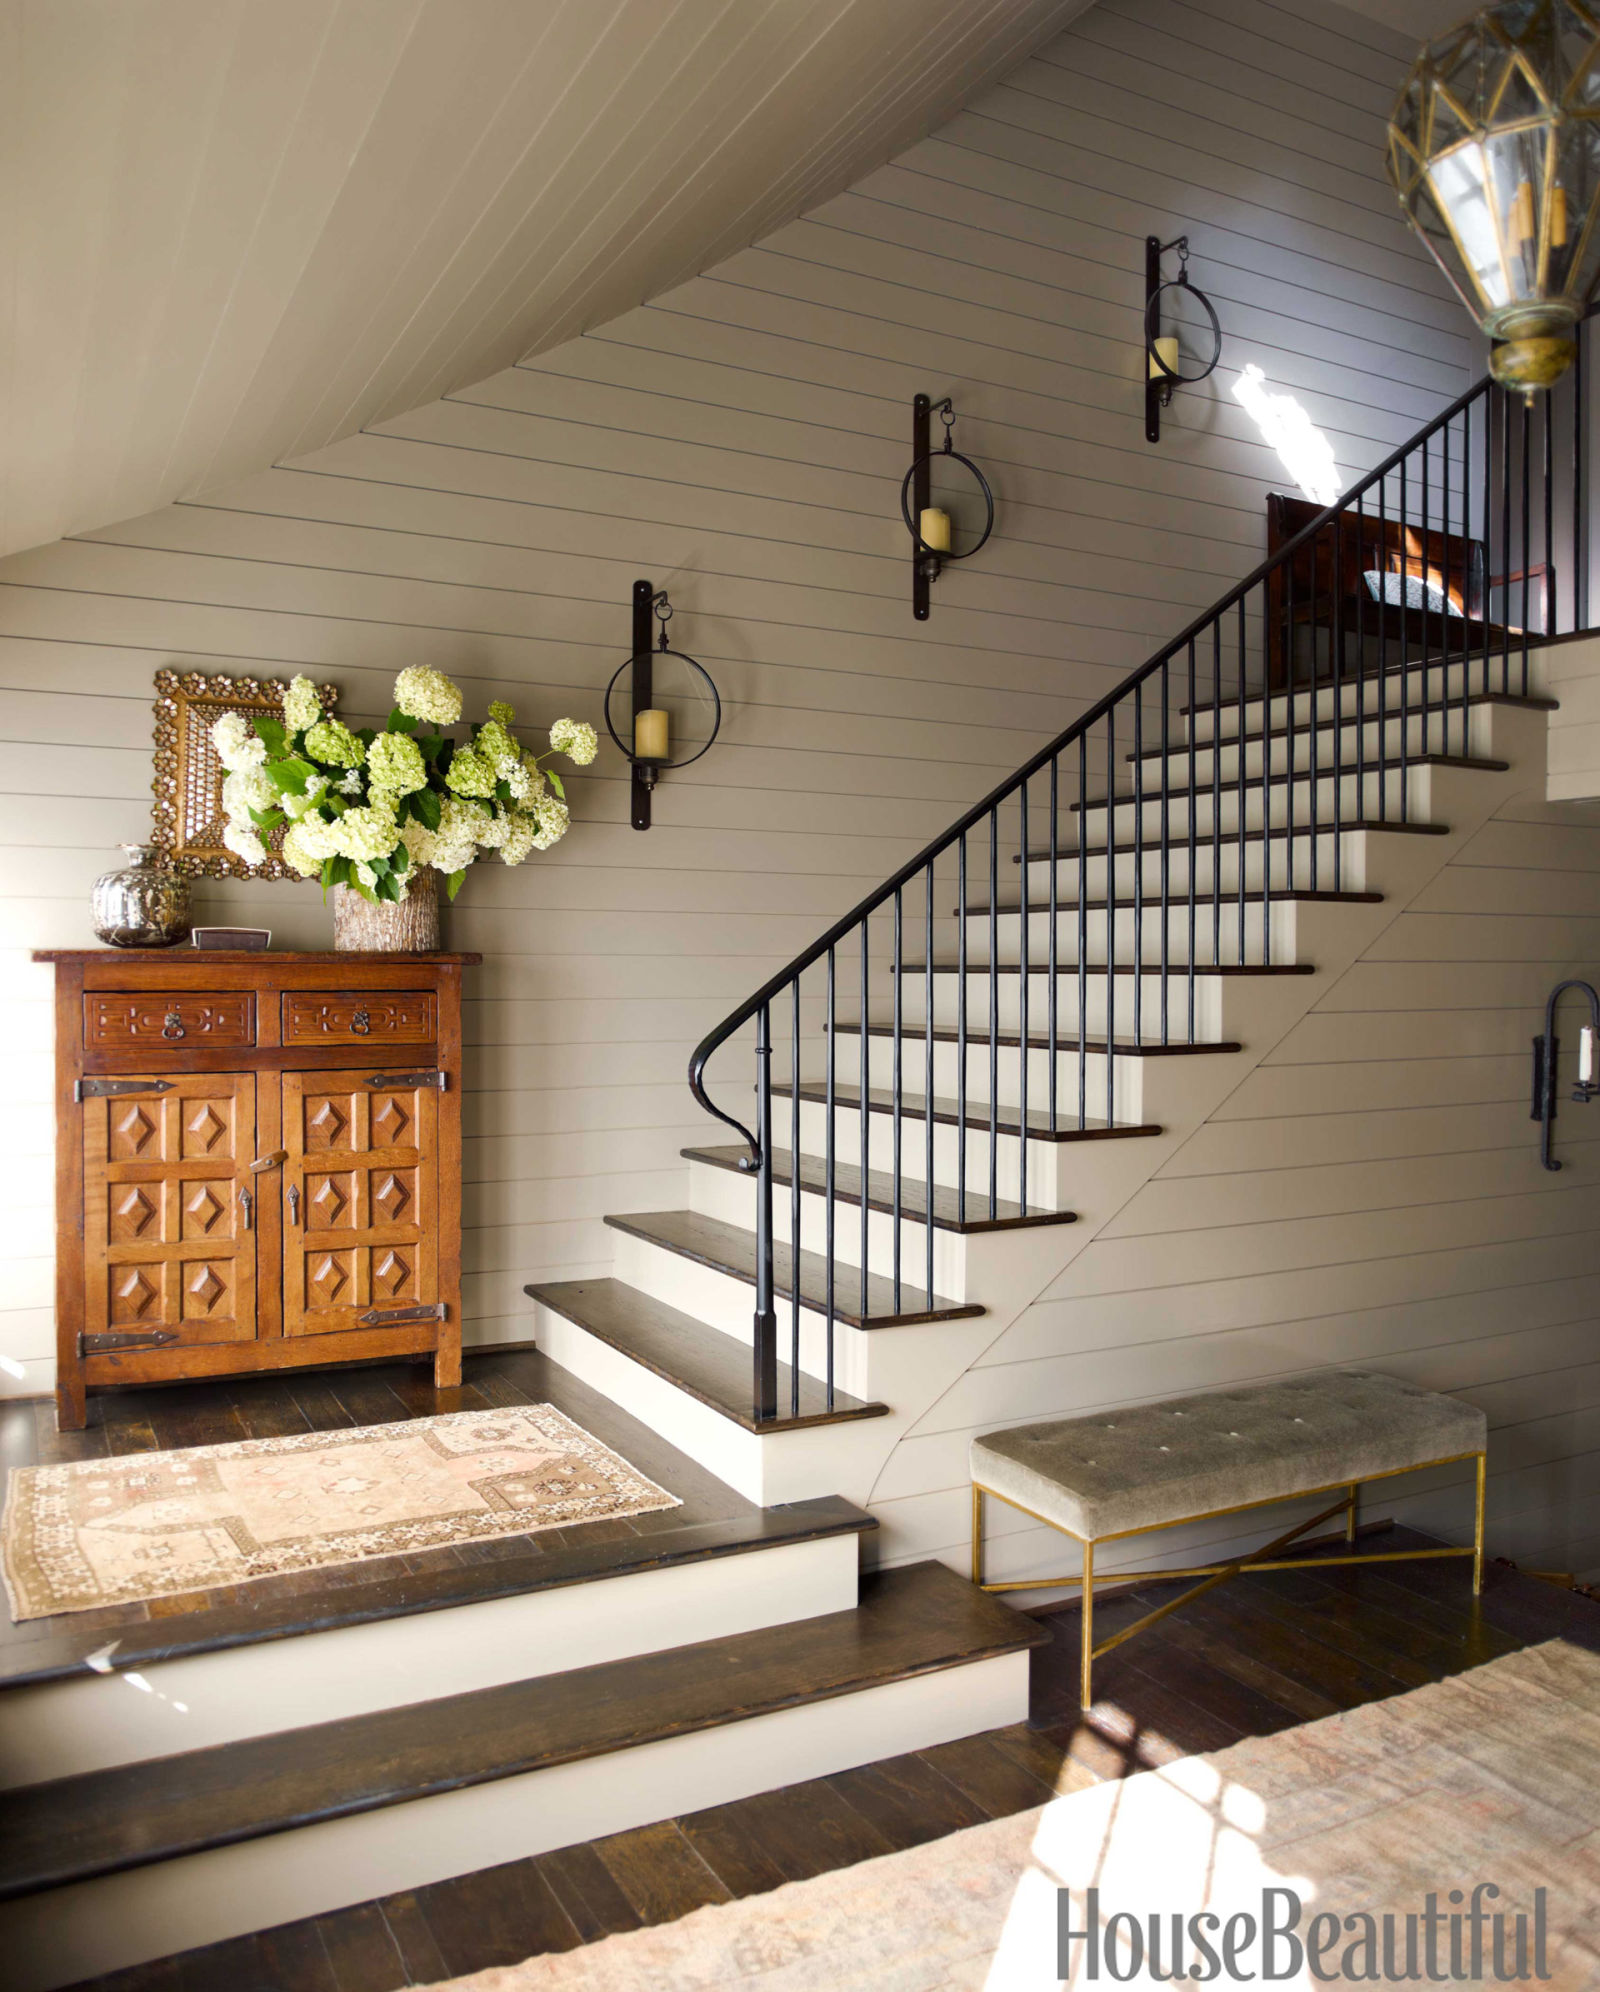 Beautiful Interior Staircase Ideas And Newel Post Designs: House Beautiful Pinterest